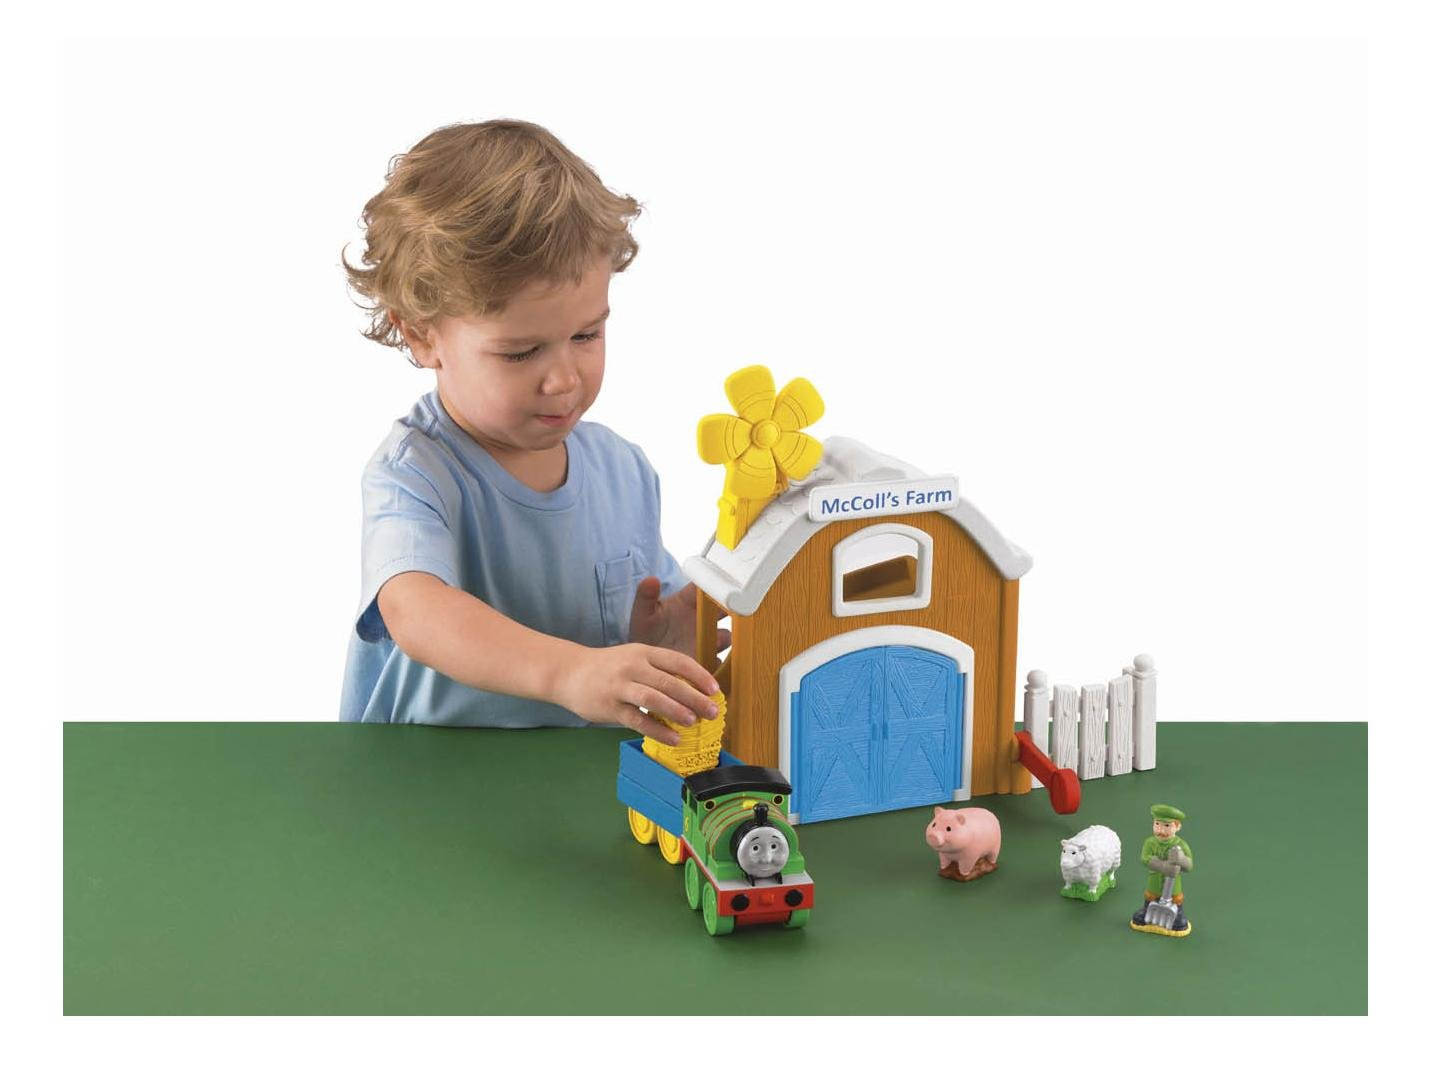 Thomas  Friends: Discover Junction Percy at McColl's Farm by Fisher-Price Thomas